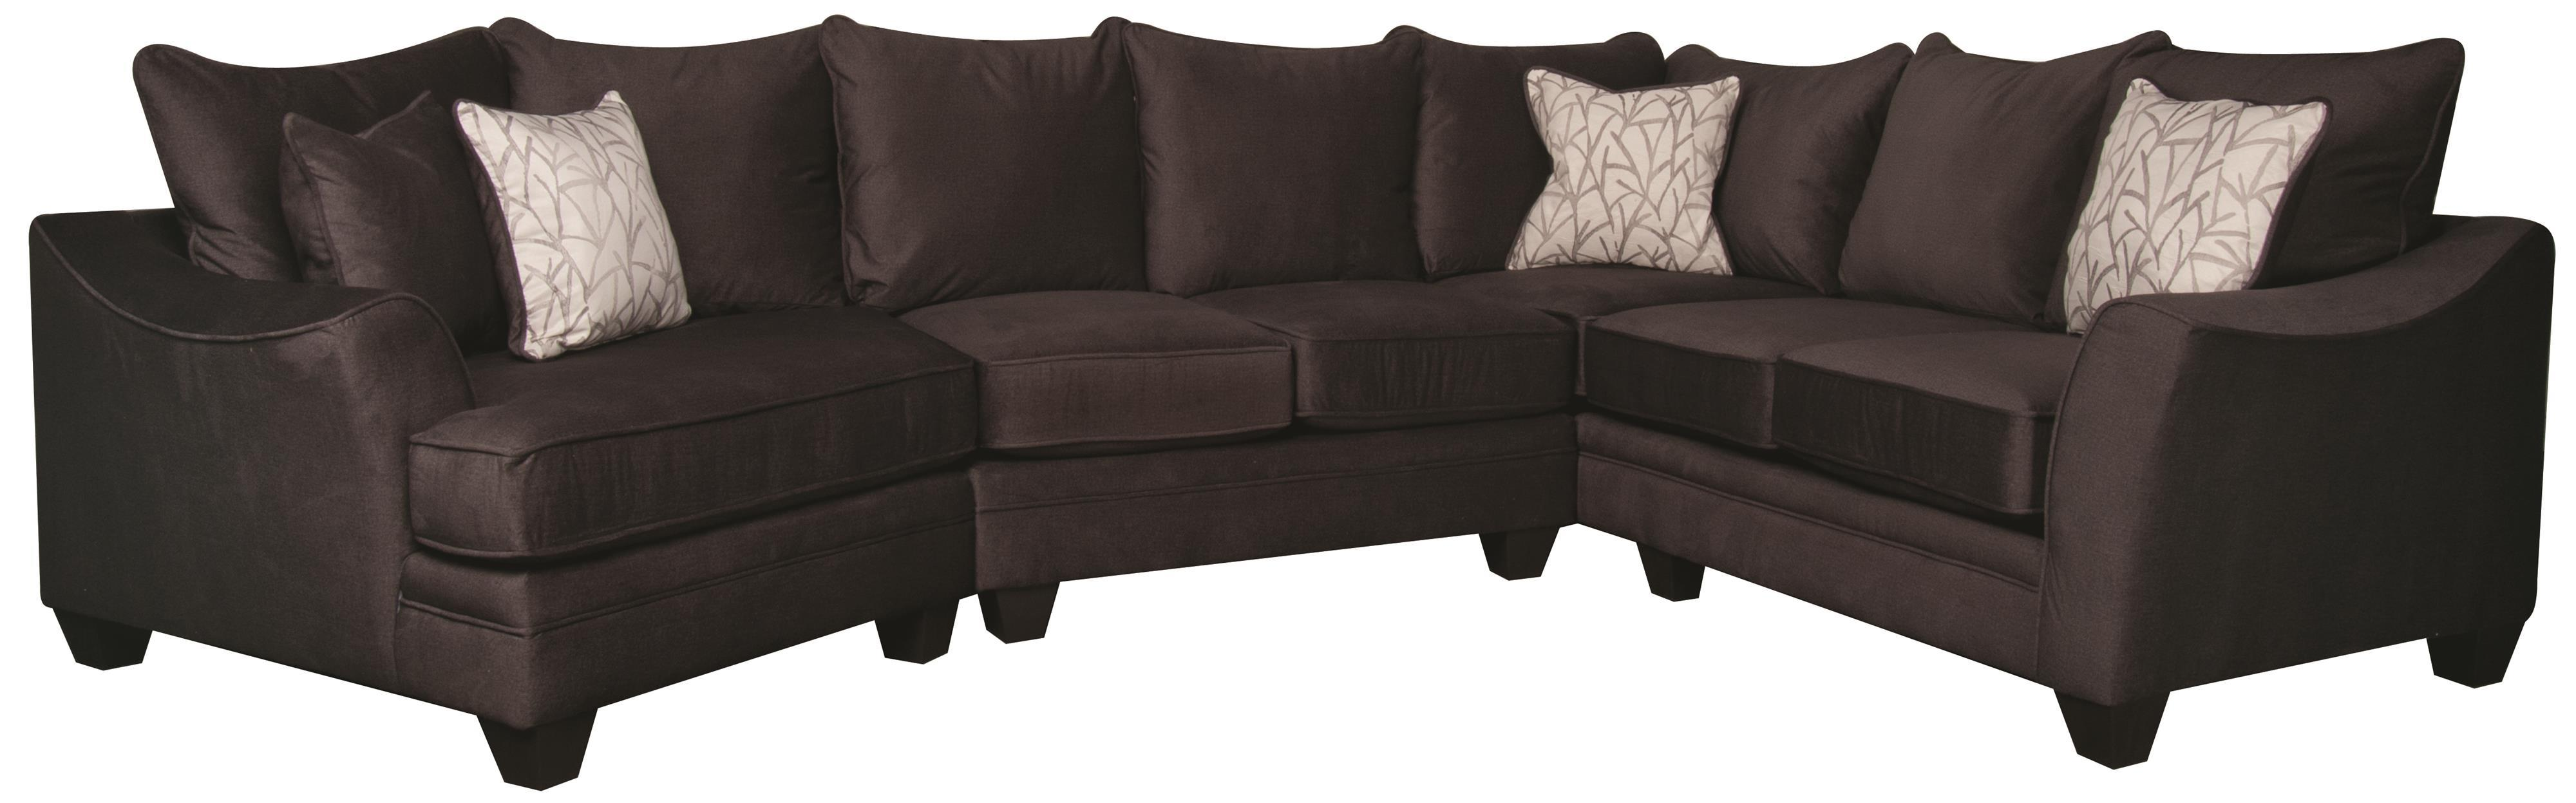 Rachel Rachel Sectional Sofa by Peak Living at Morris Home